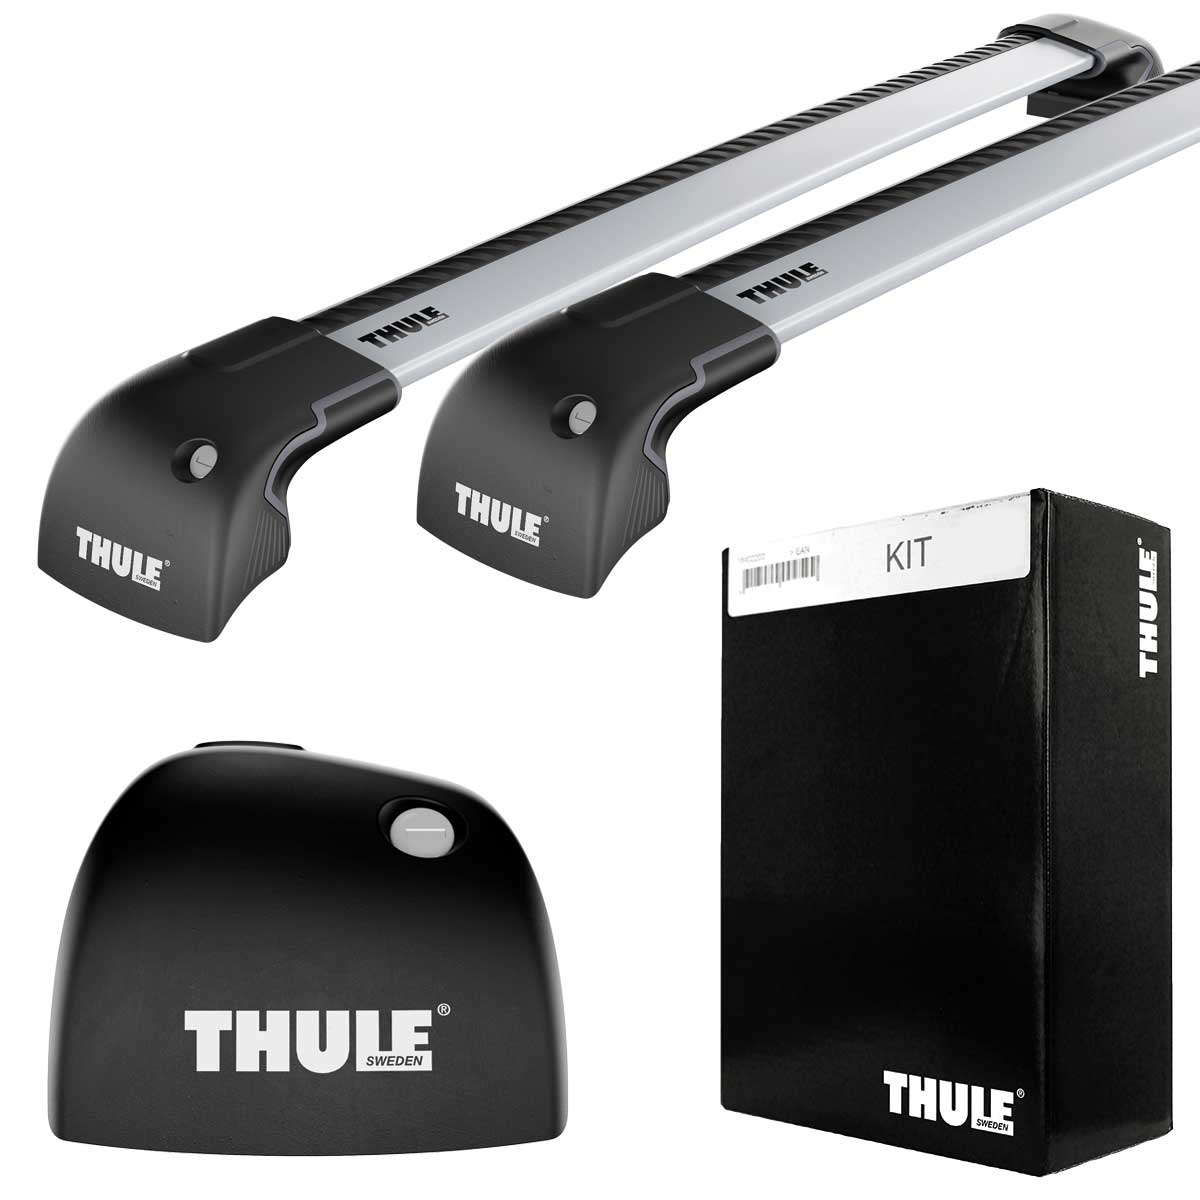 bmw thule wingbar edge silver 9595 kit 4023. Black Bedroom Furniture Sets. Home Design Ideas